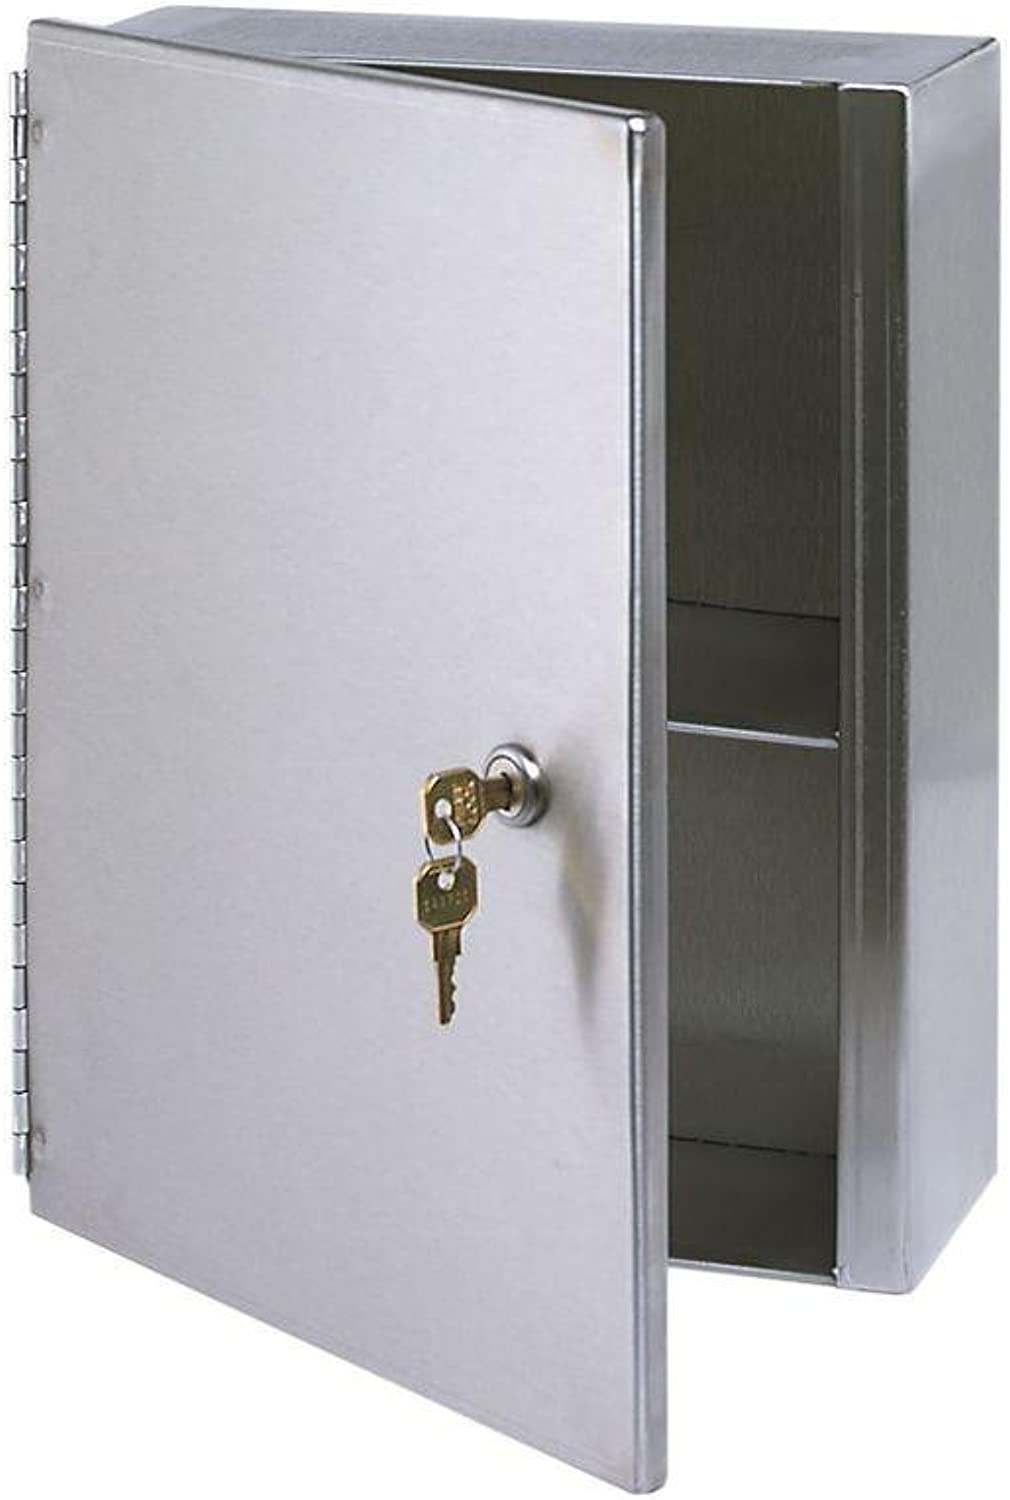 10.5 in. x 13 in. Surface-Mounted Medicine Cabinet in Stainless Steel